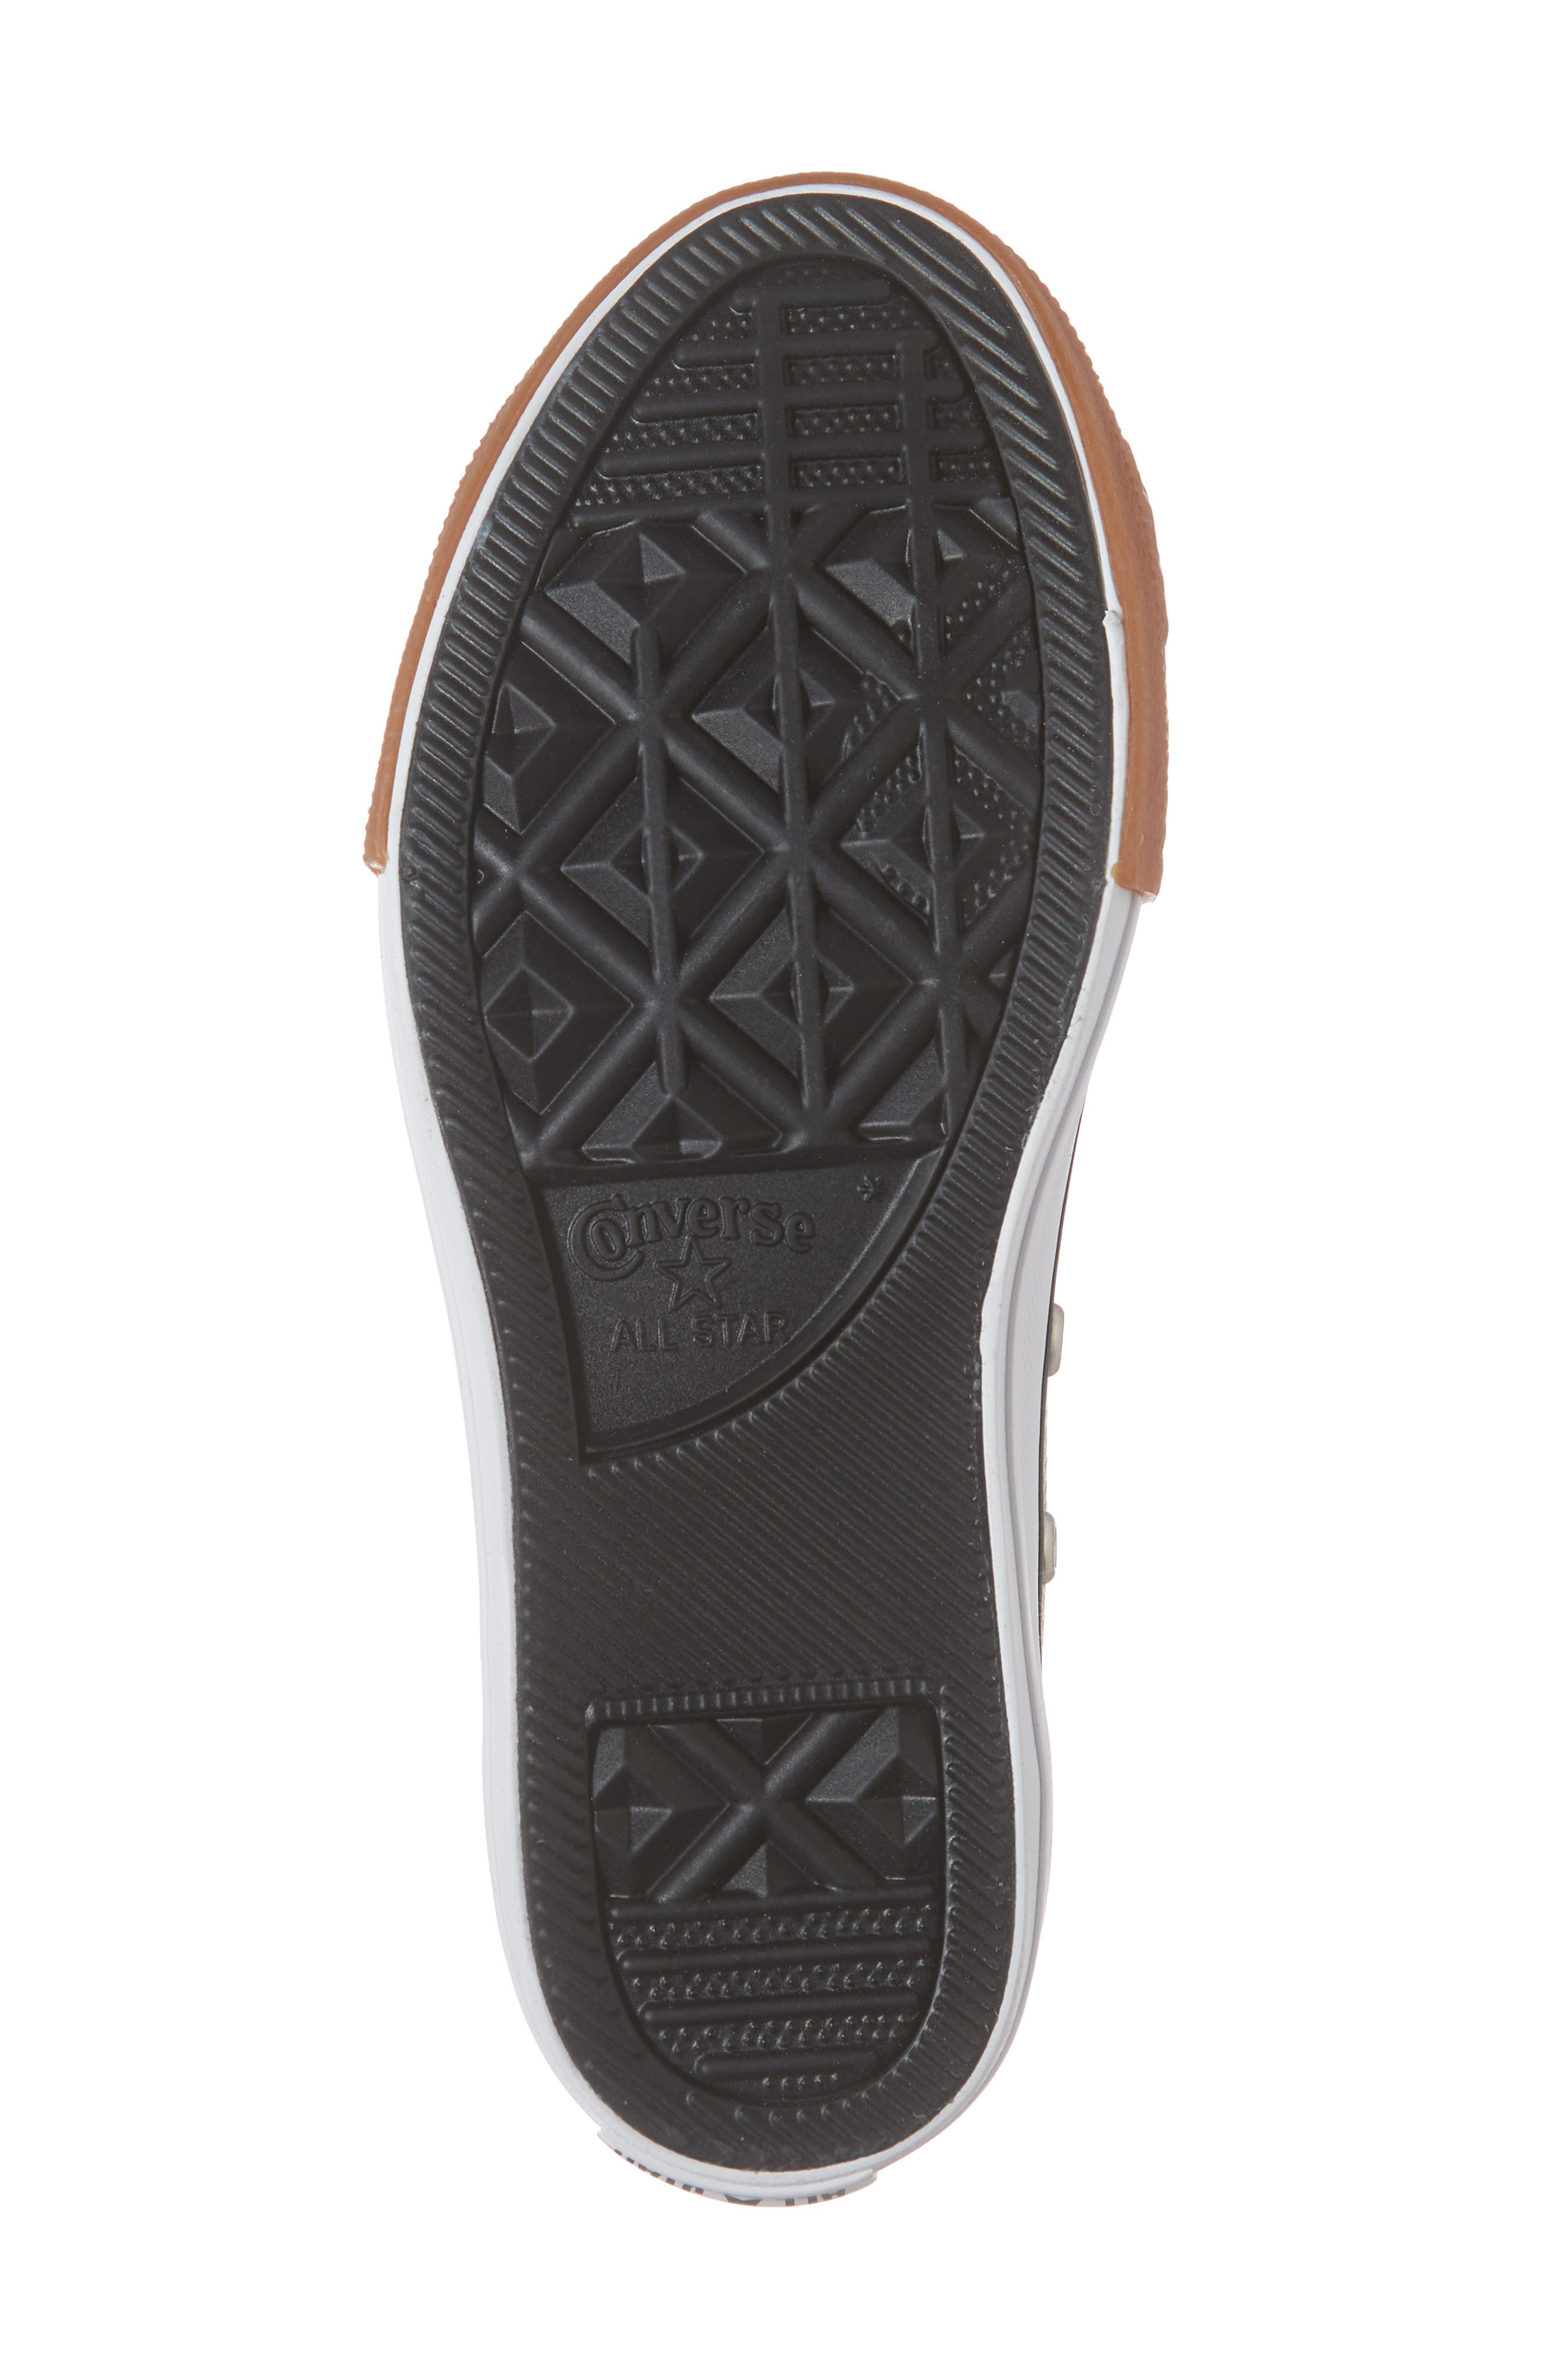 Chuck Taylor<sup>®</sup> All Star<sup>®</sup> No Gum In Class Leather High Top Sneaker,                             Alternate thumbnail 6, color,                             039